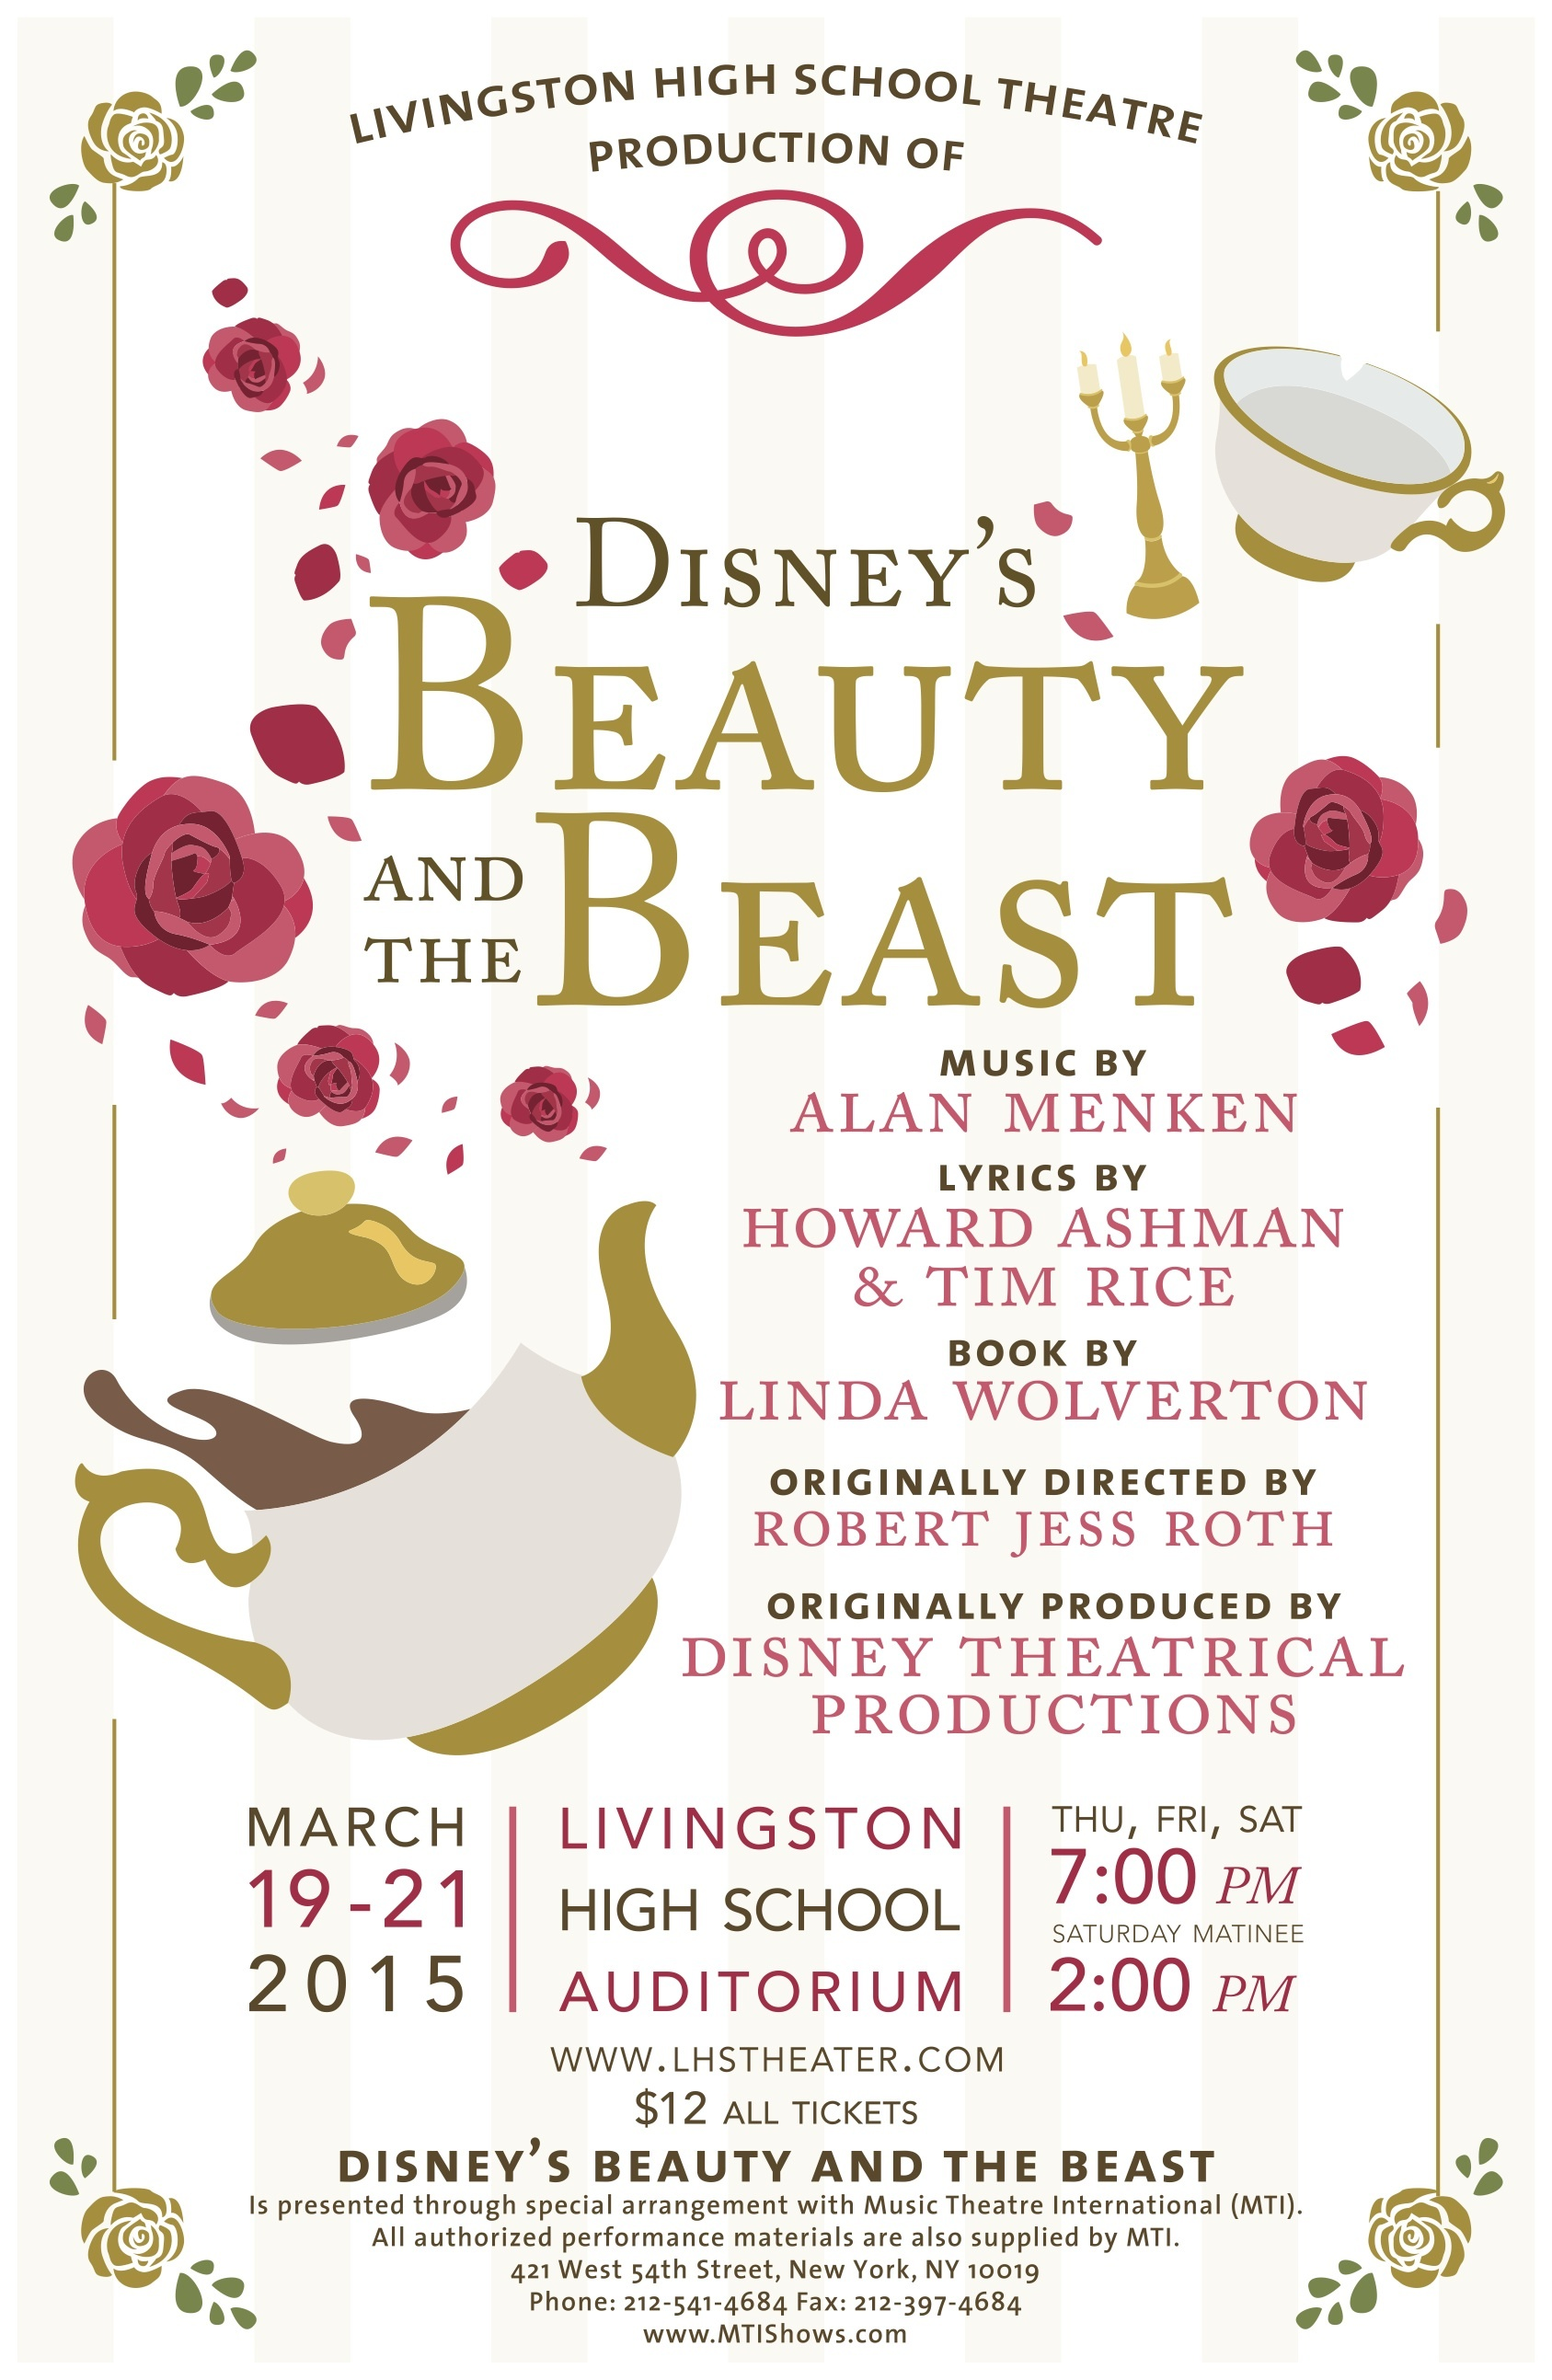 af7f8e434899237bdbcd_Beauty_and_the_Beast.jpg